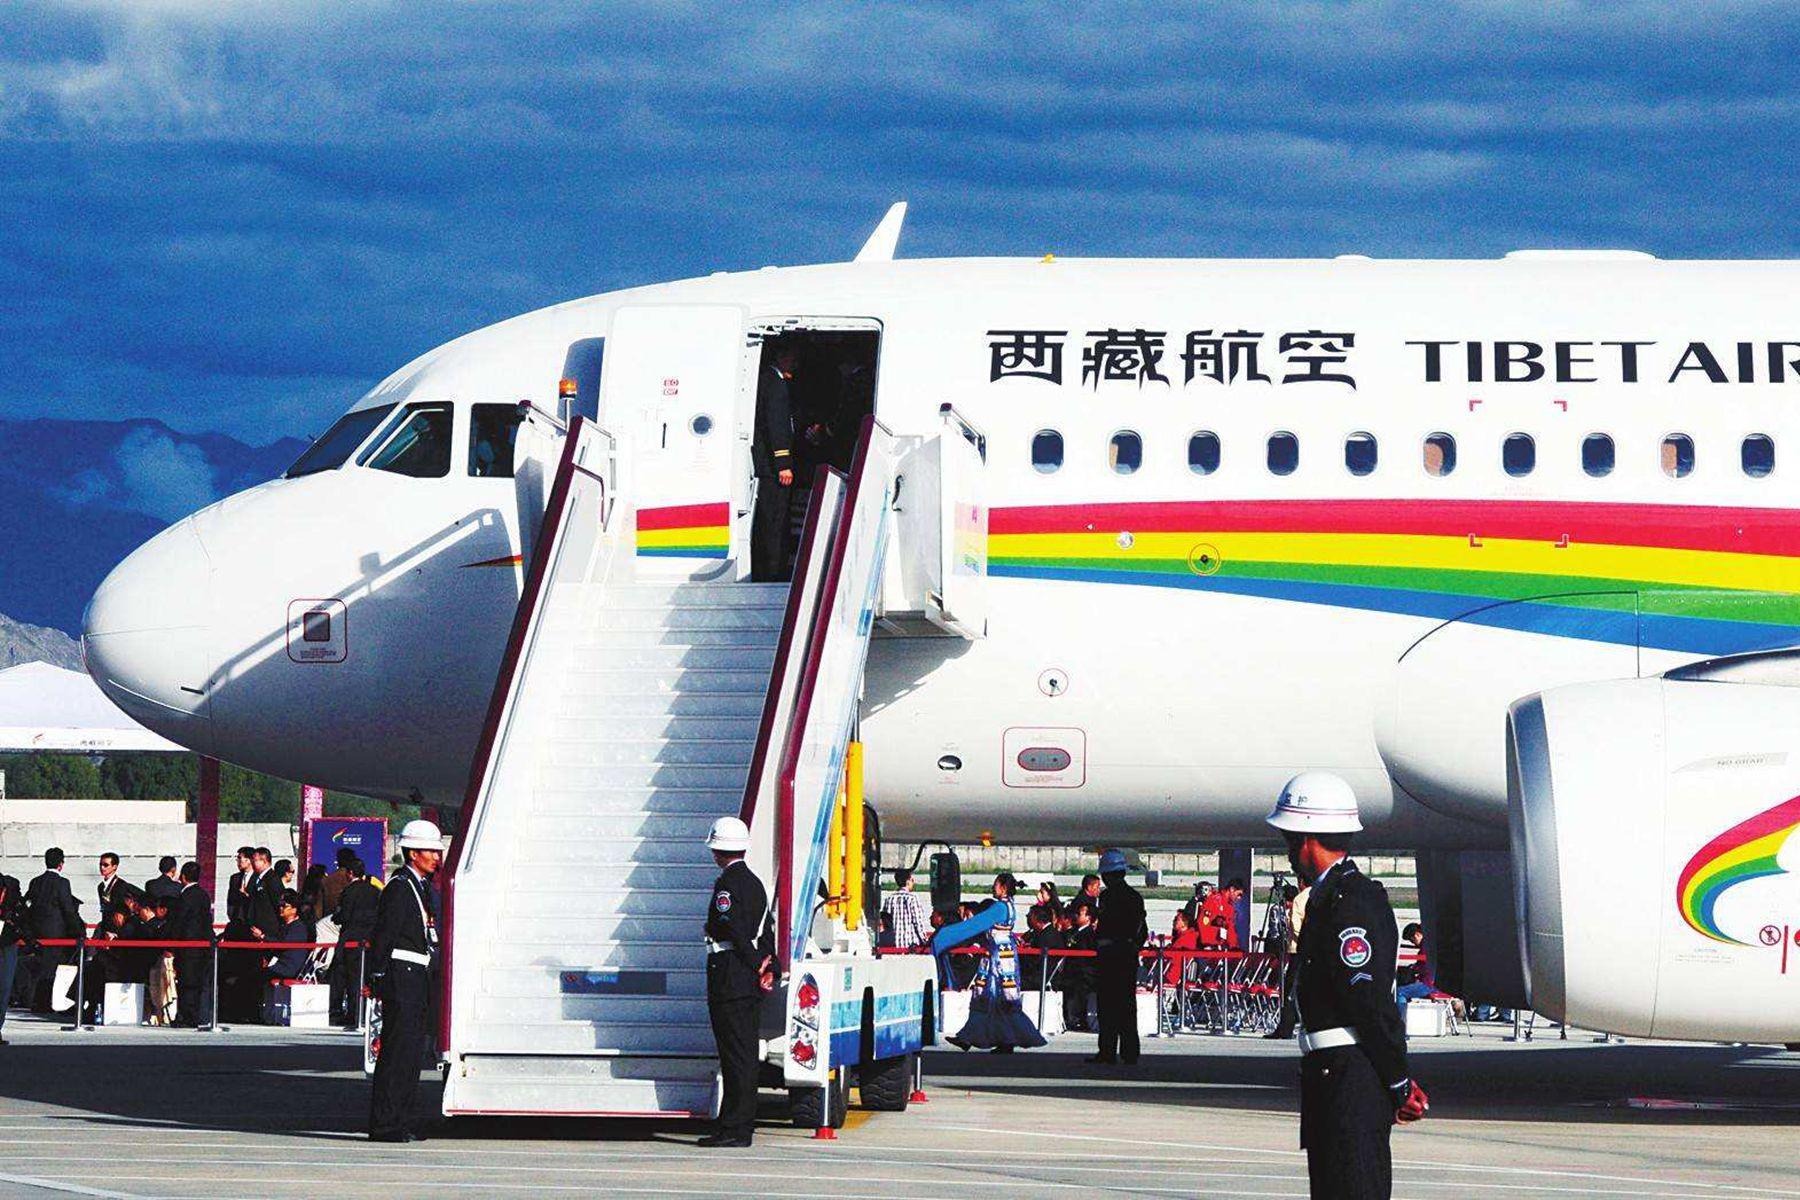 Tibet Airlines inaugura primera ruta intercontinental